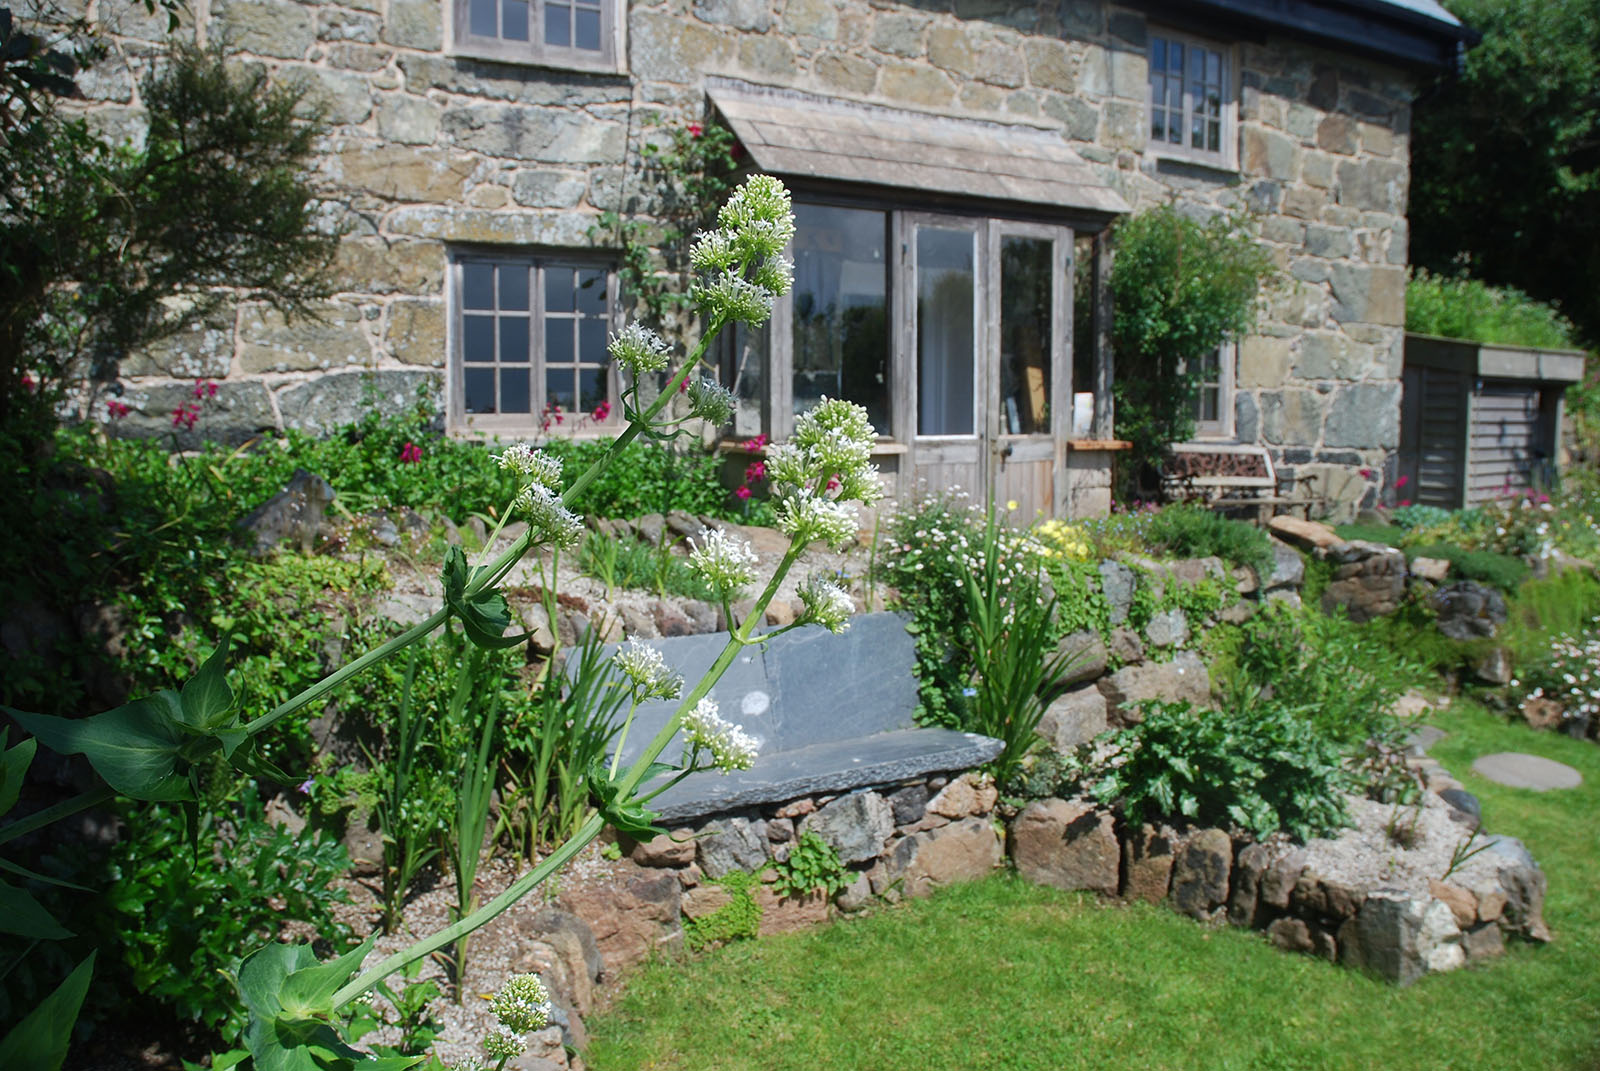 Coverack Cottage Garden made with local granite, slate and serpentine